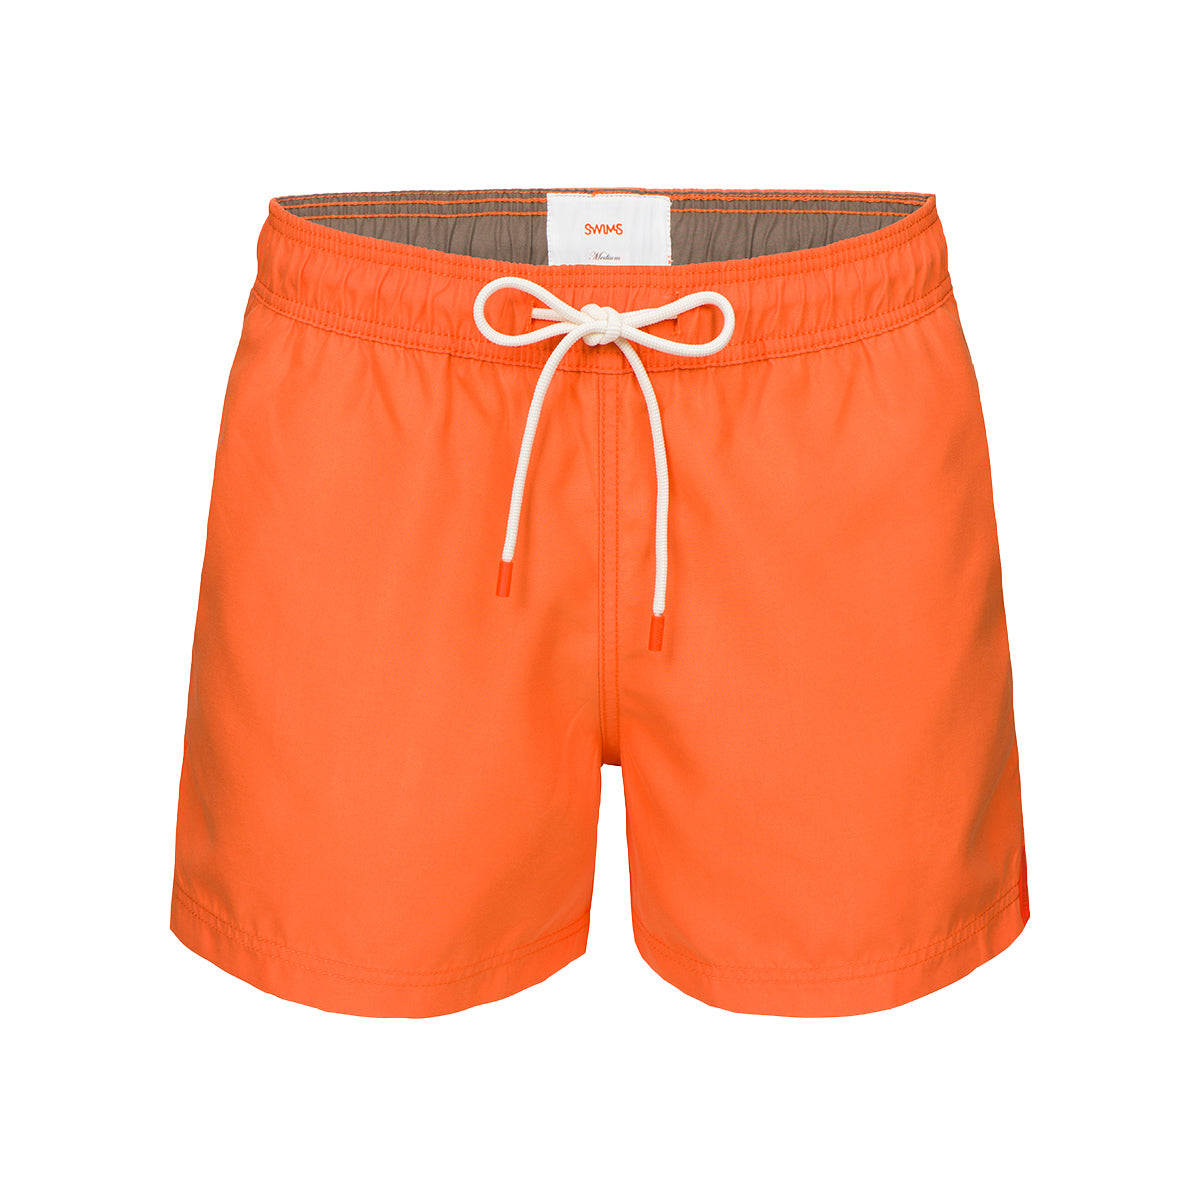 Gavitella Solid Bathing Shorts - background::white,variant::orange